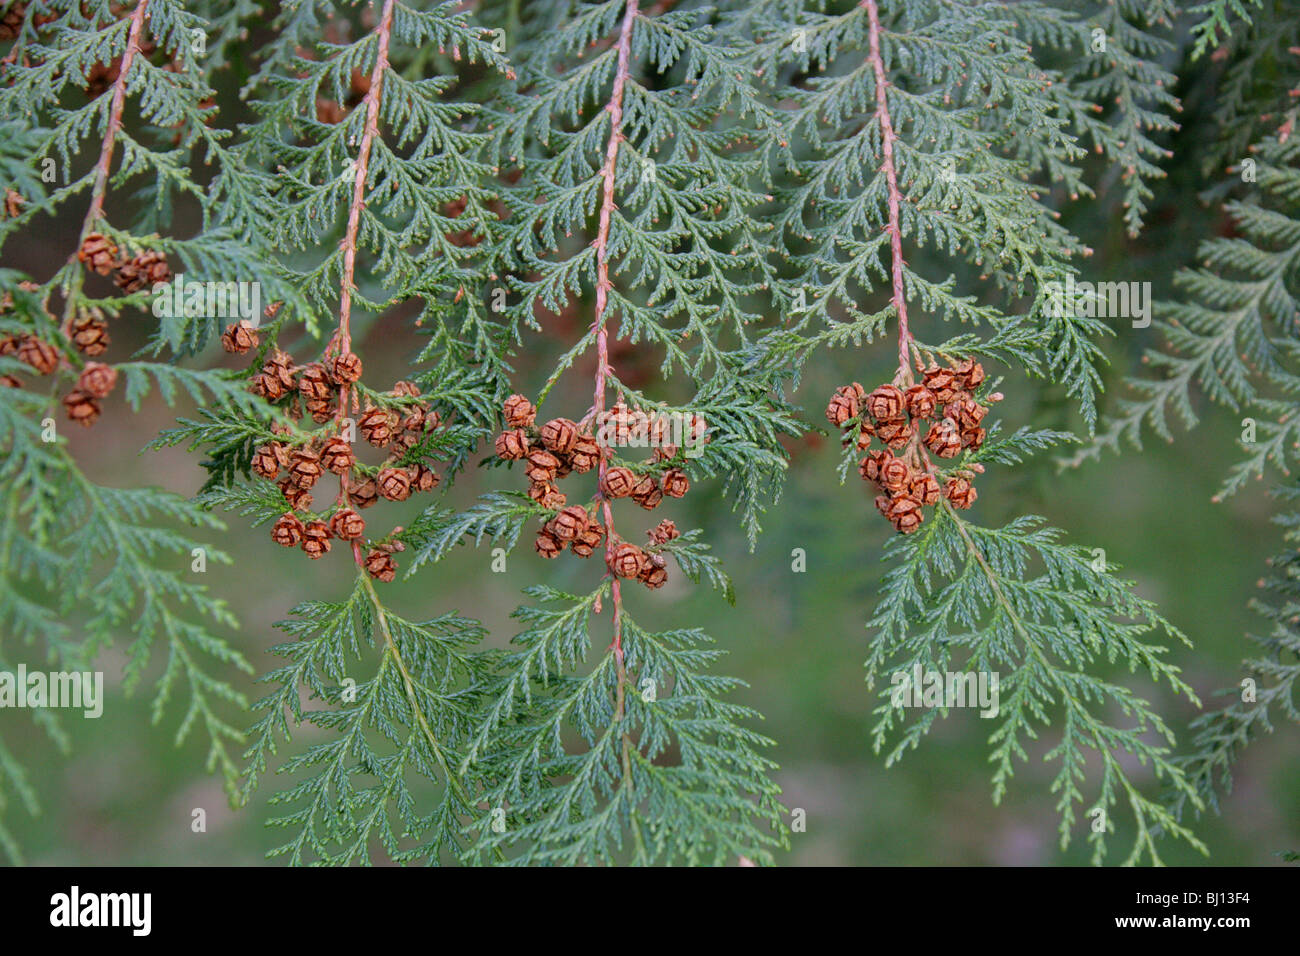 Formosan Cypress, Formosan False Cypress, Chamaecyparis formosensis, Cupressaceae, Taiwan, Asia. Endangered species. - Stock Image